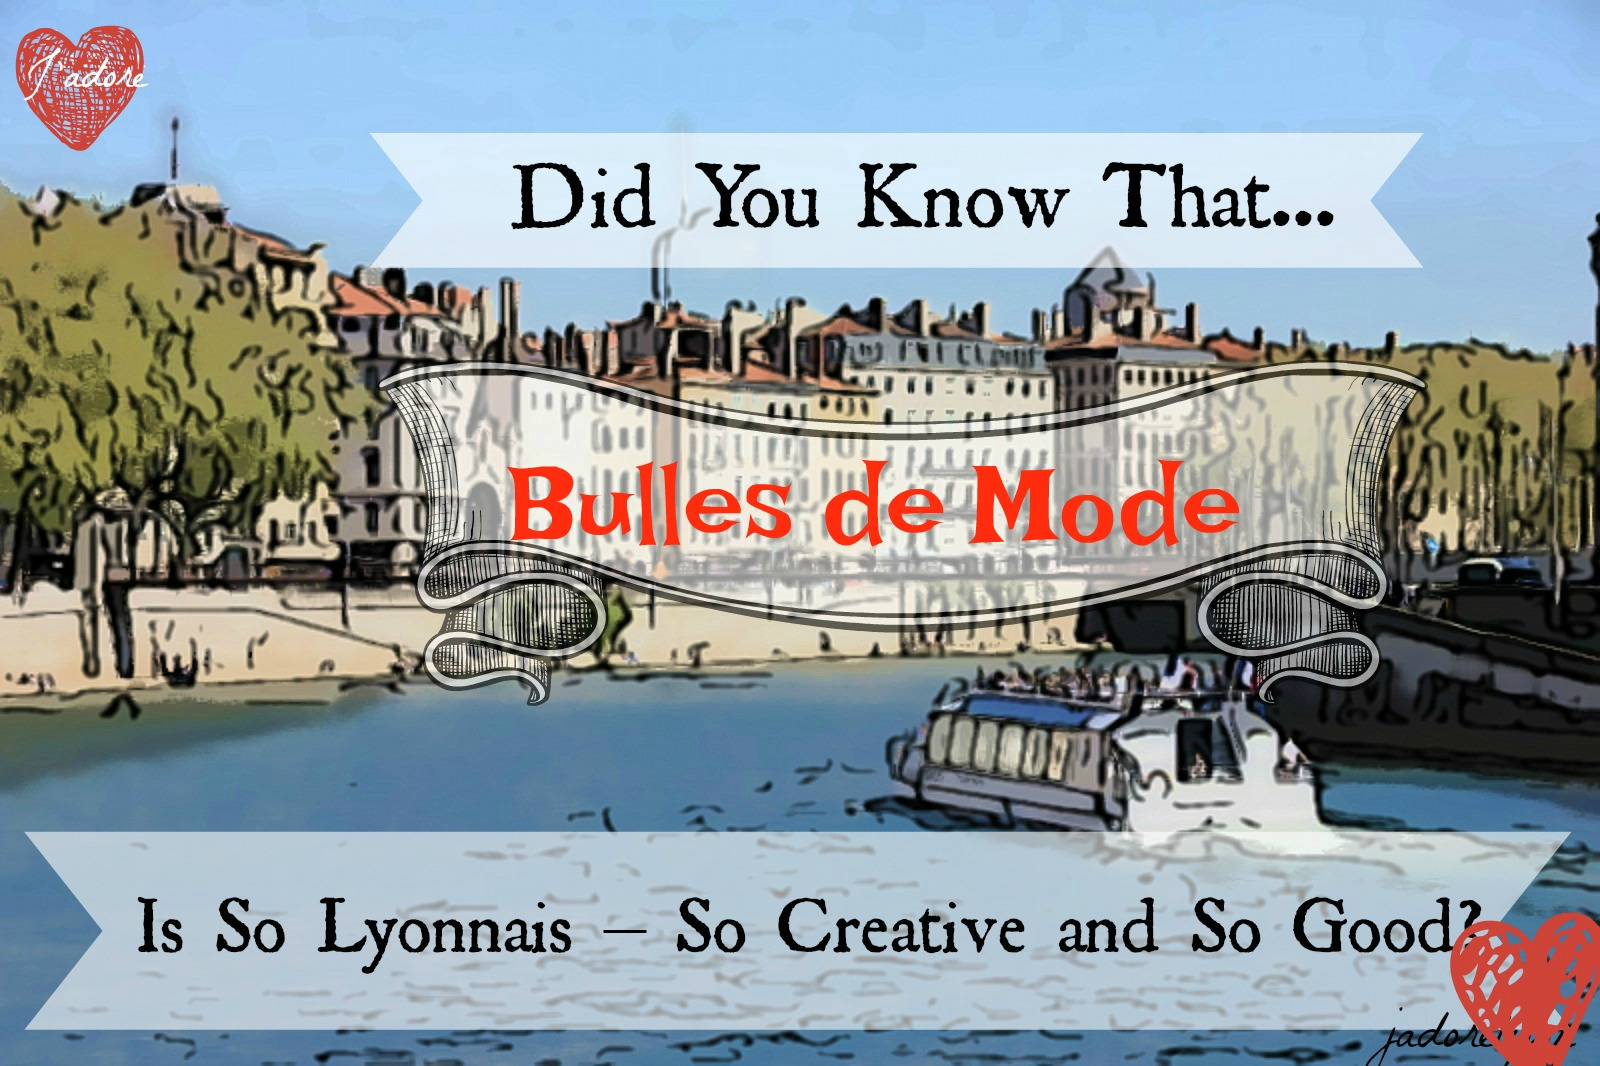 Did you know Bulles de Mode